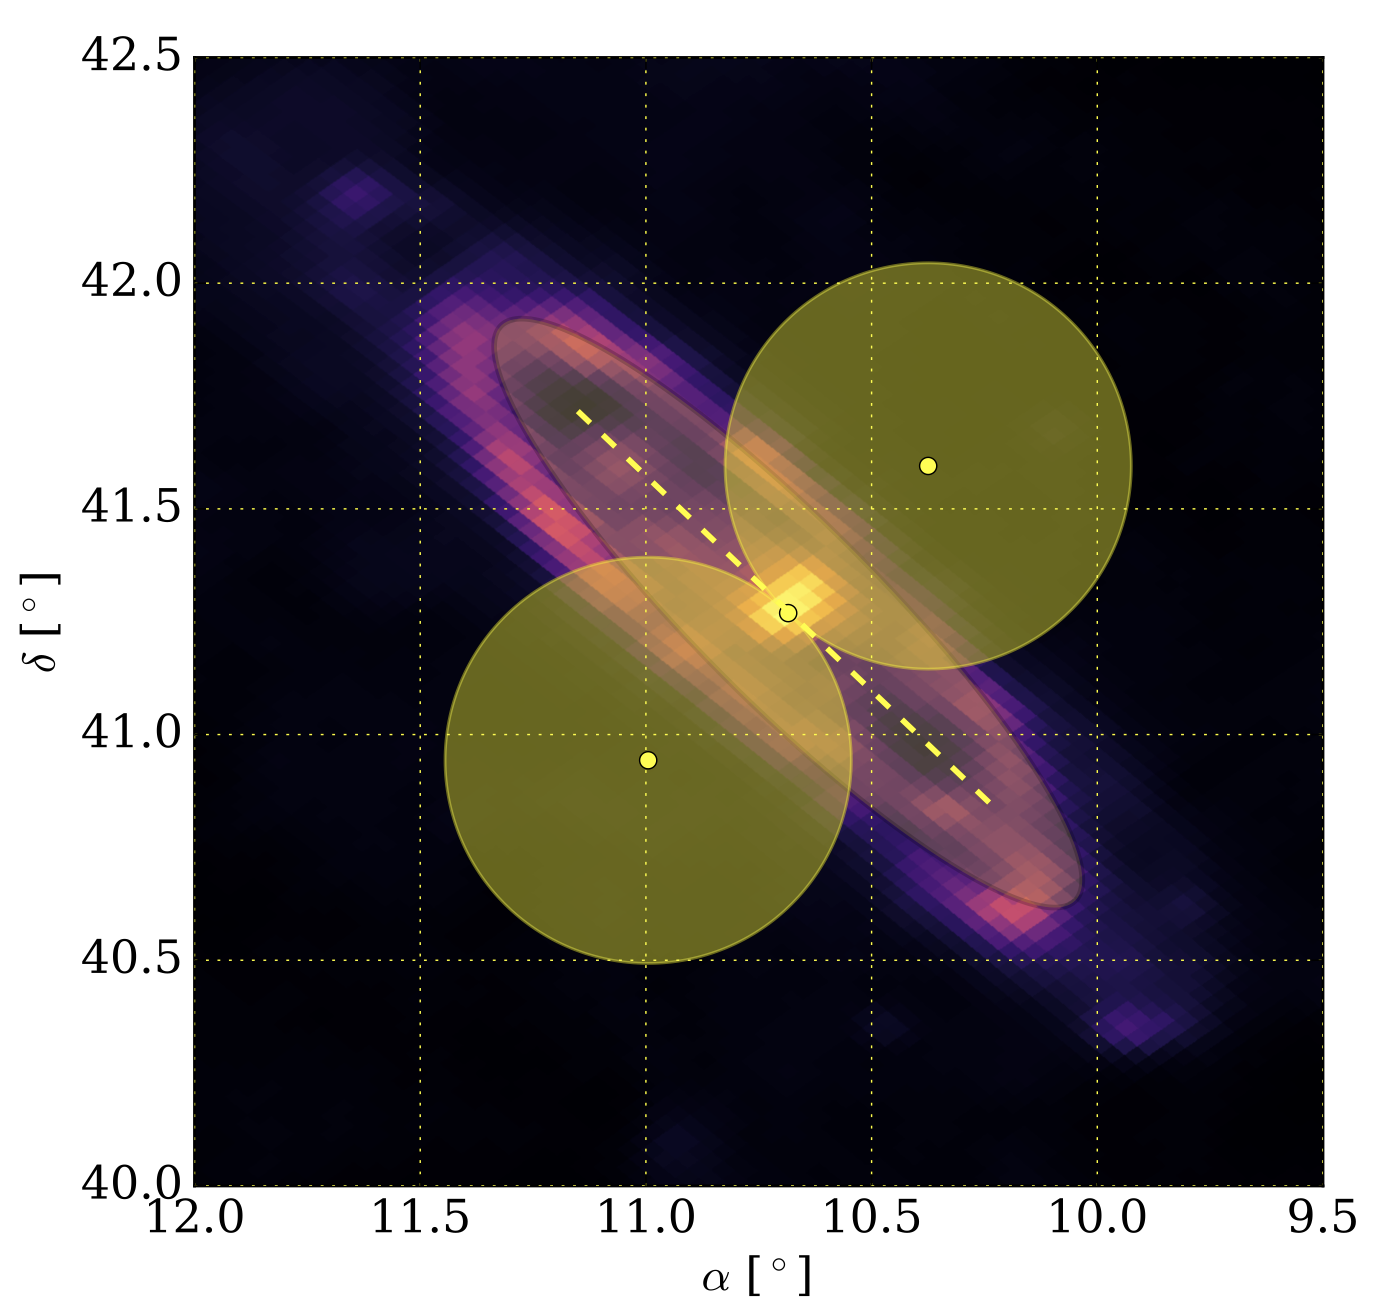 Constraints on the Emission of Gamma-Rays from M31 with HAWC